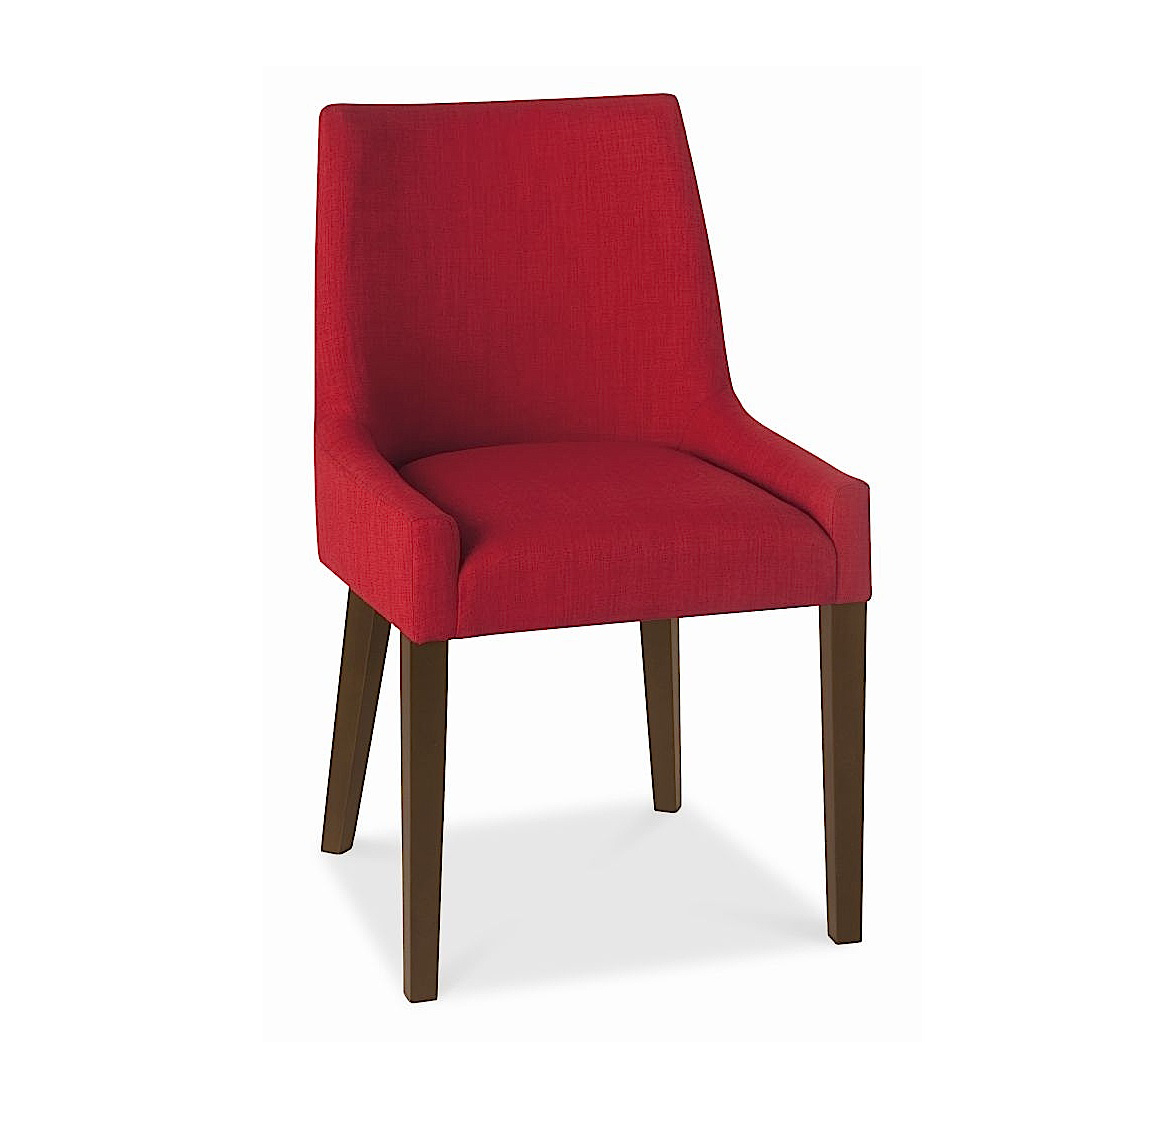 ALEX RED UPHOLSTERED DINING CHAIR WITH WALNUT LEGS -0